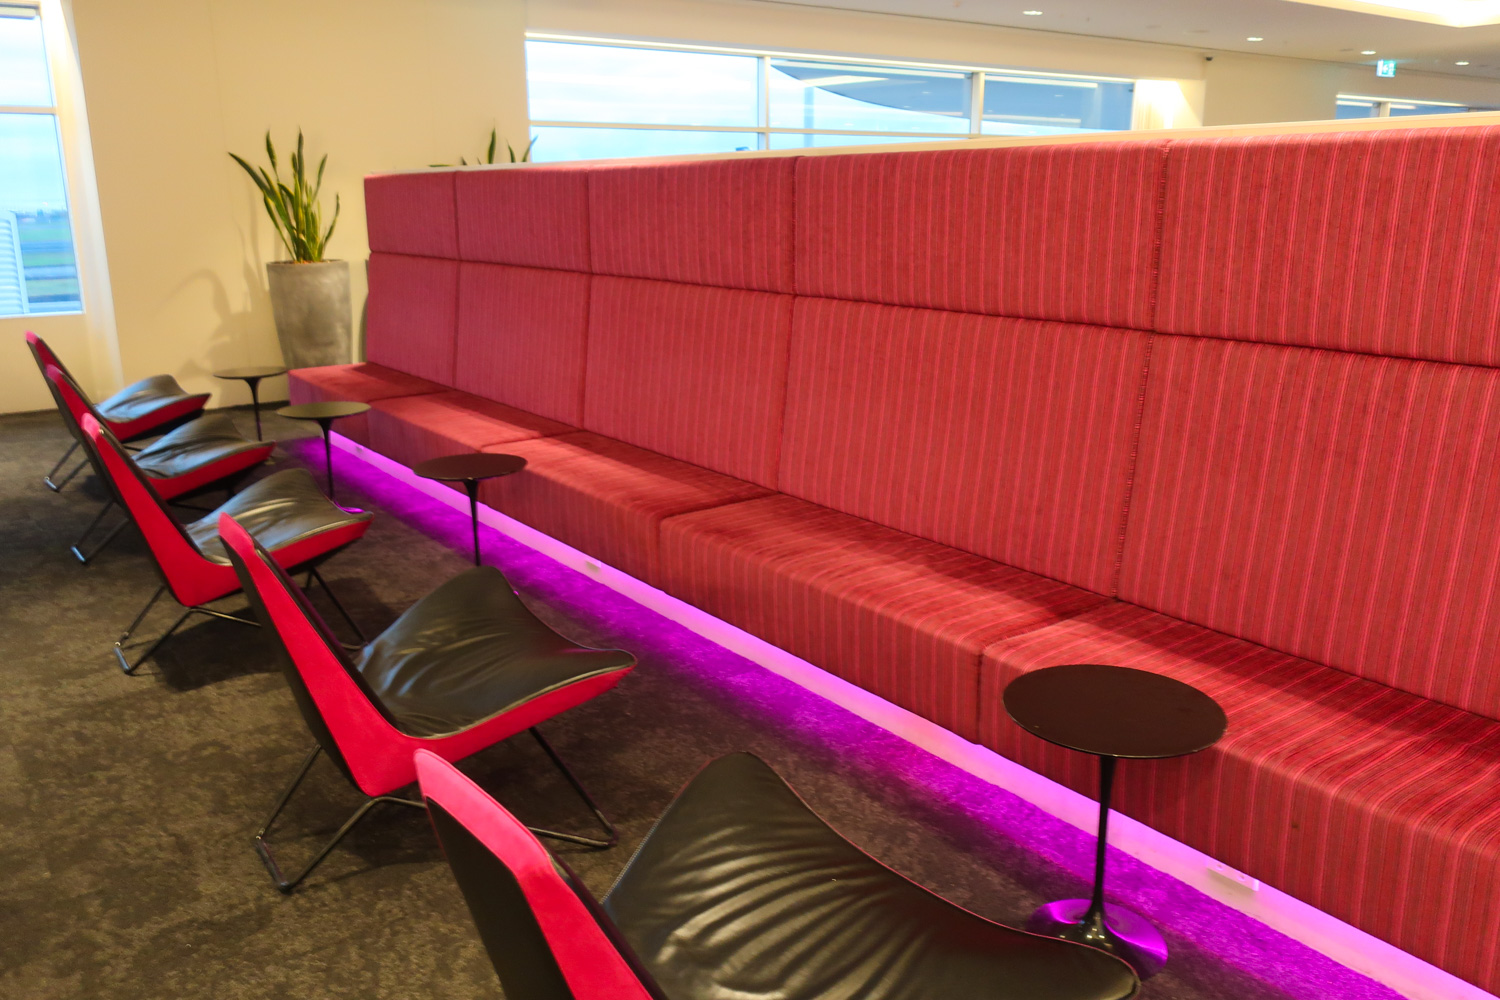 Mod Seating - With A Focus On Pink! - Air New Zealand Lounge Sydney  Photo: Calvin Wood